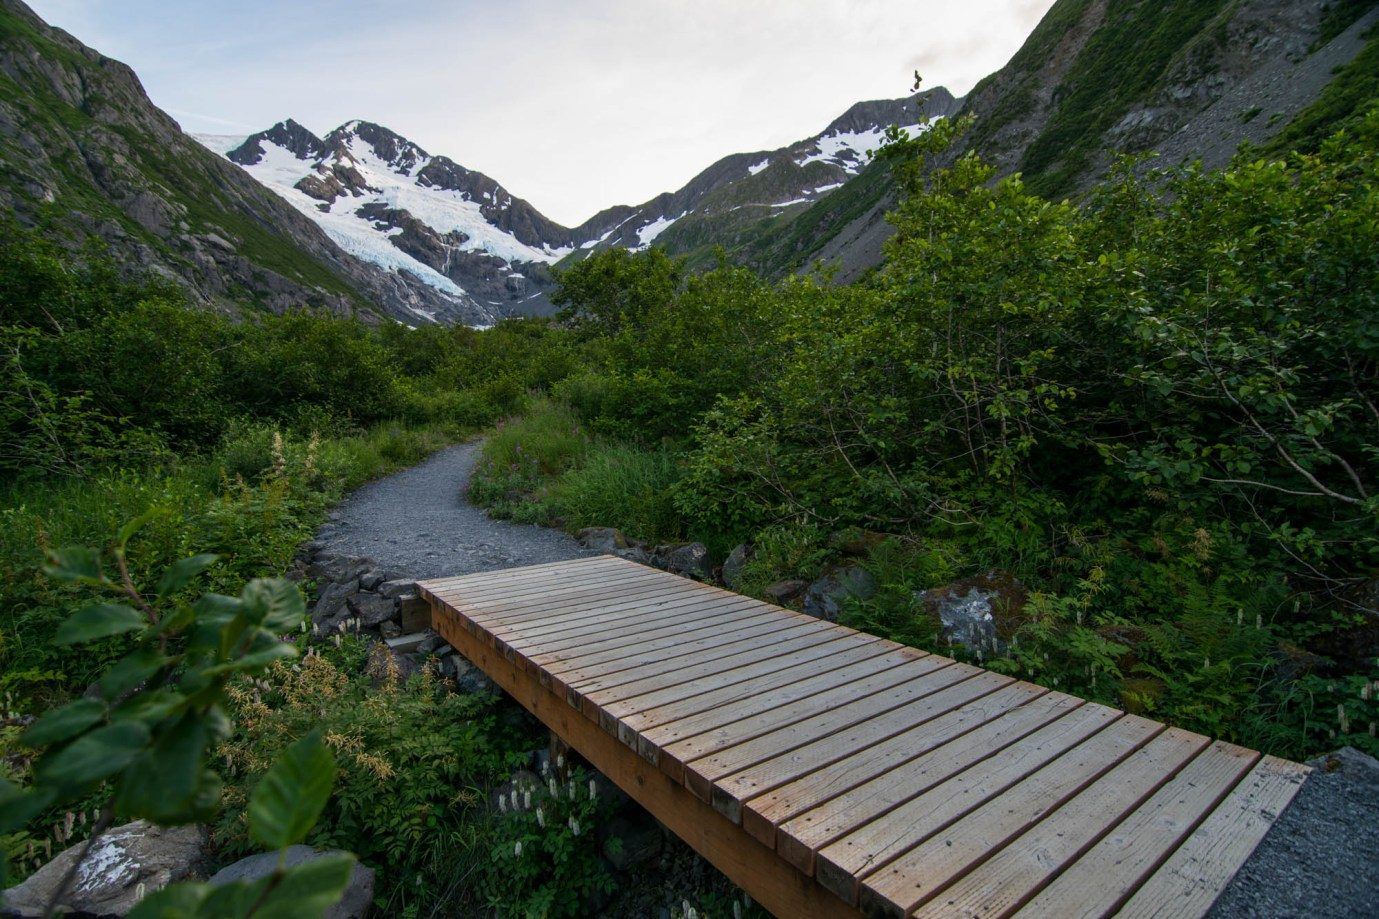 A small wooden foot bridge crosses a creek along a path through green bushes towards a mountain glacier known as Byron glacier.